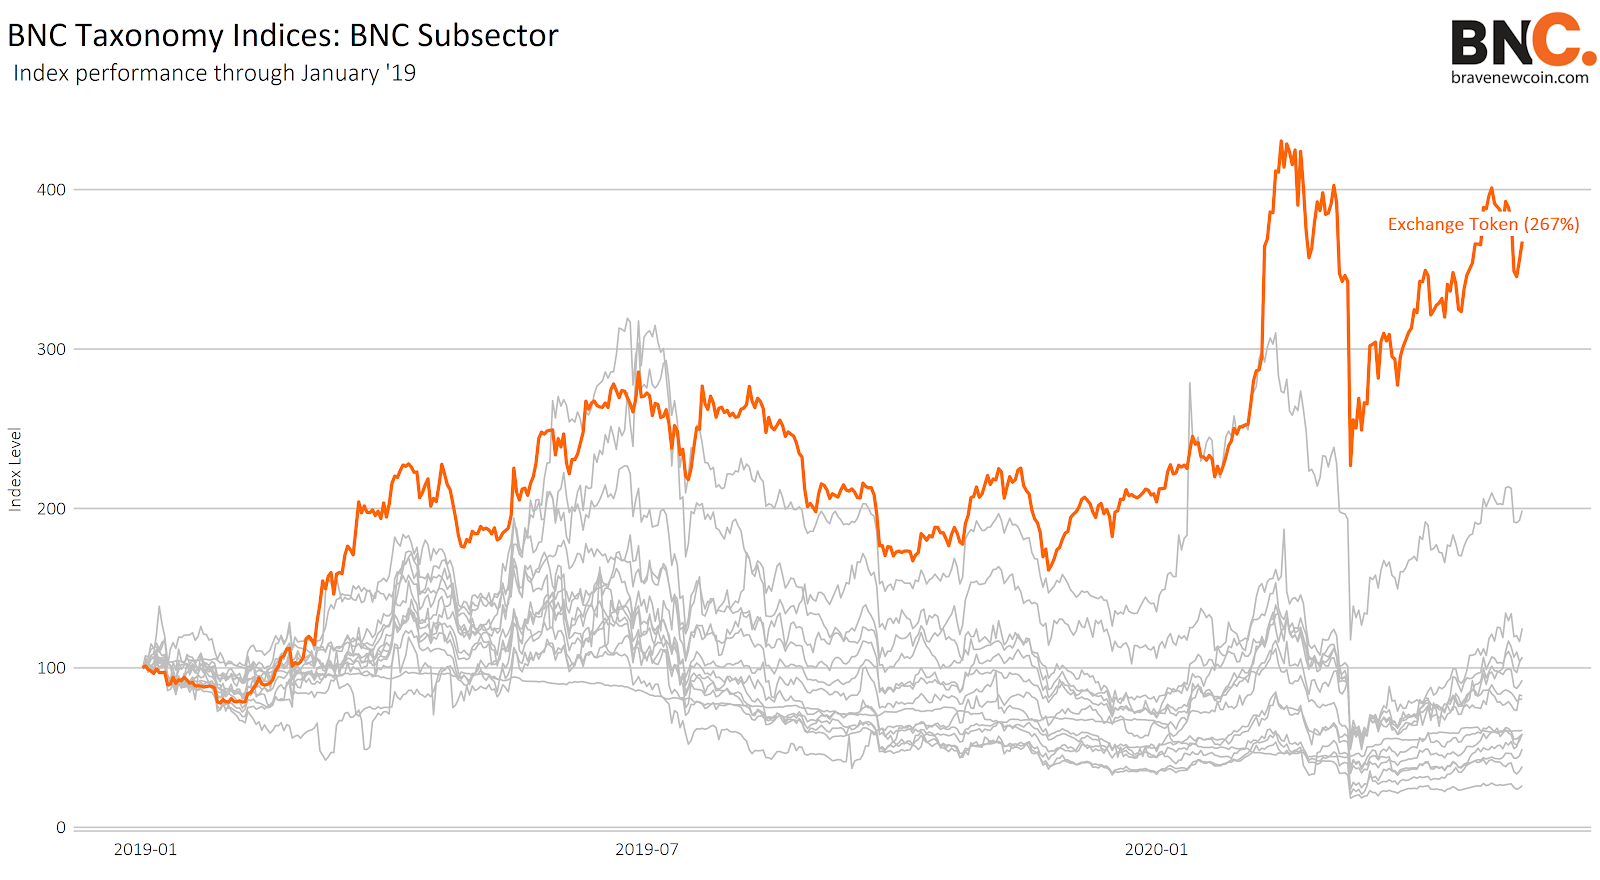 BNC Exchange Token Index outperforms Bitcoin in the first quarter of 2020 (1)